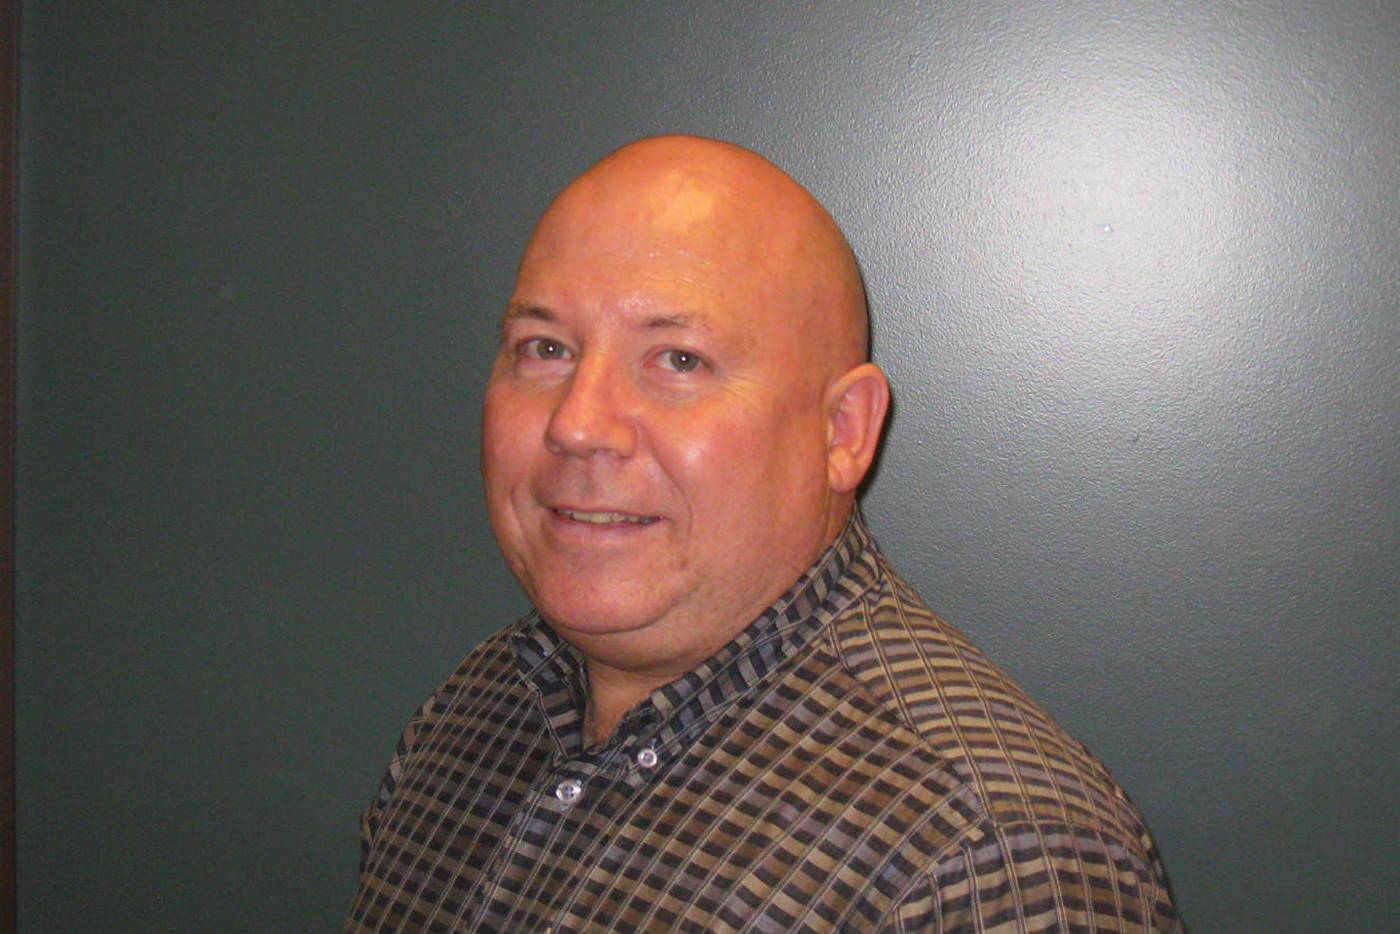 Doug Chapman has put his name forward for the 2021 municipal by-election for city council. Photo provided